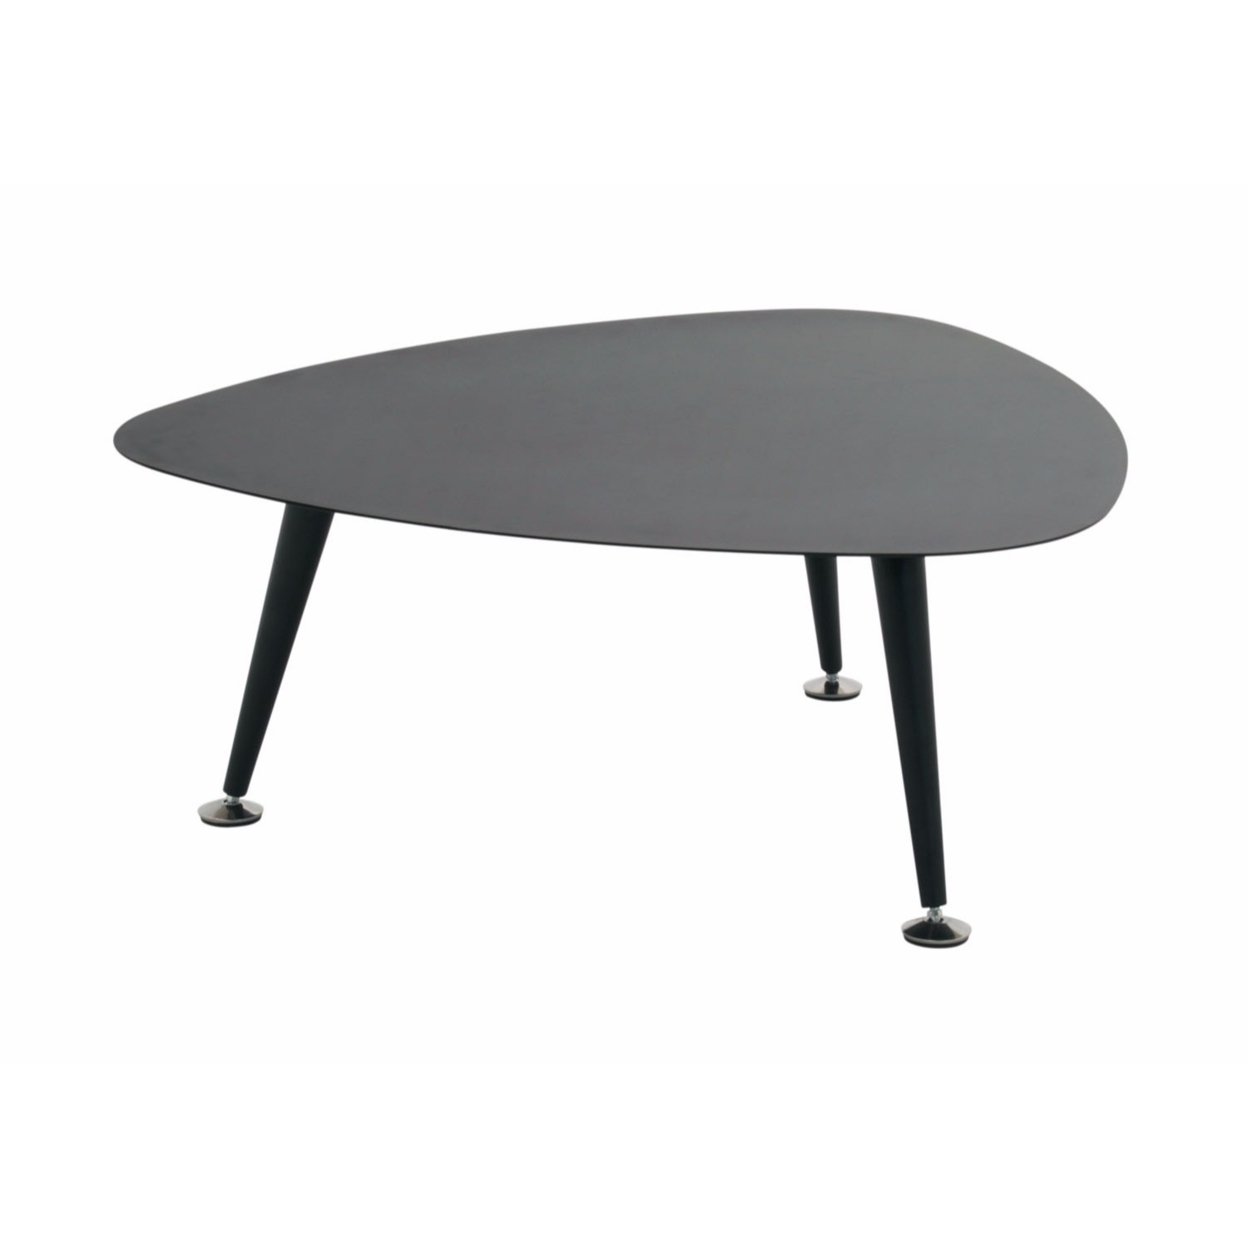 Offex Trilateral Accent Table 29, Black